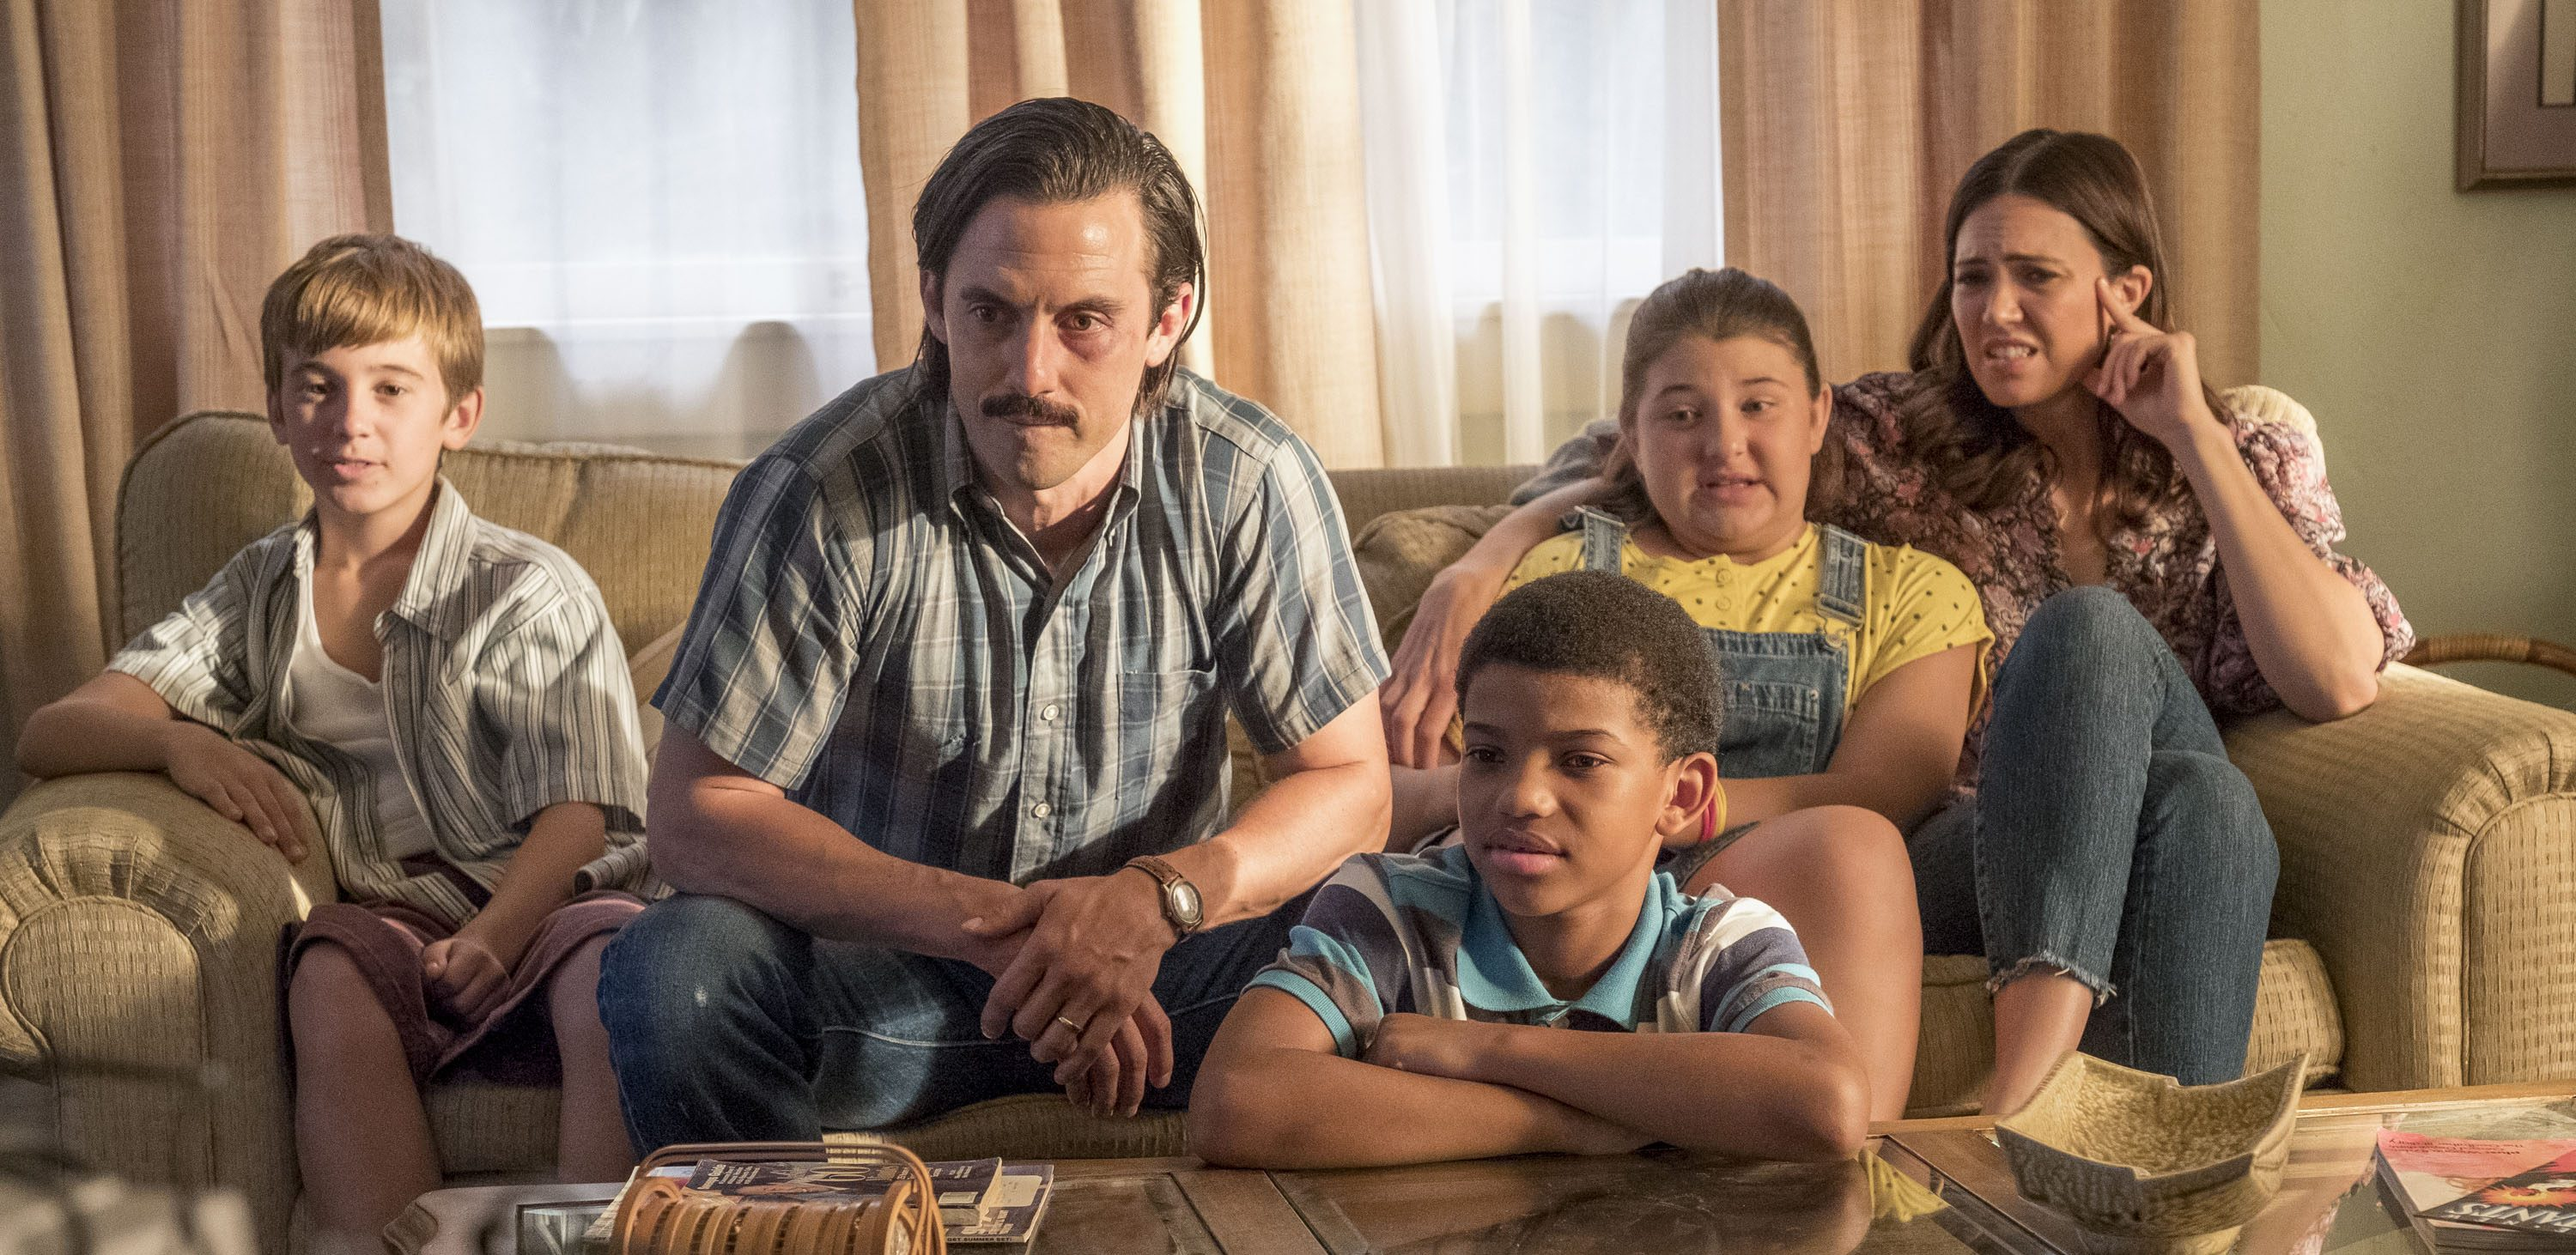 Milo Ventimiglia and Mandy Moore in 'This Is Us'